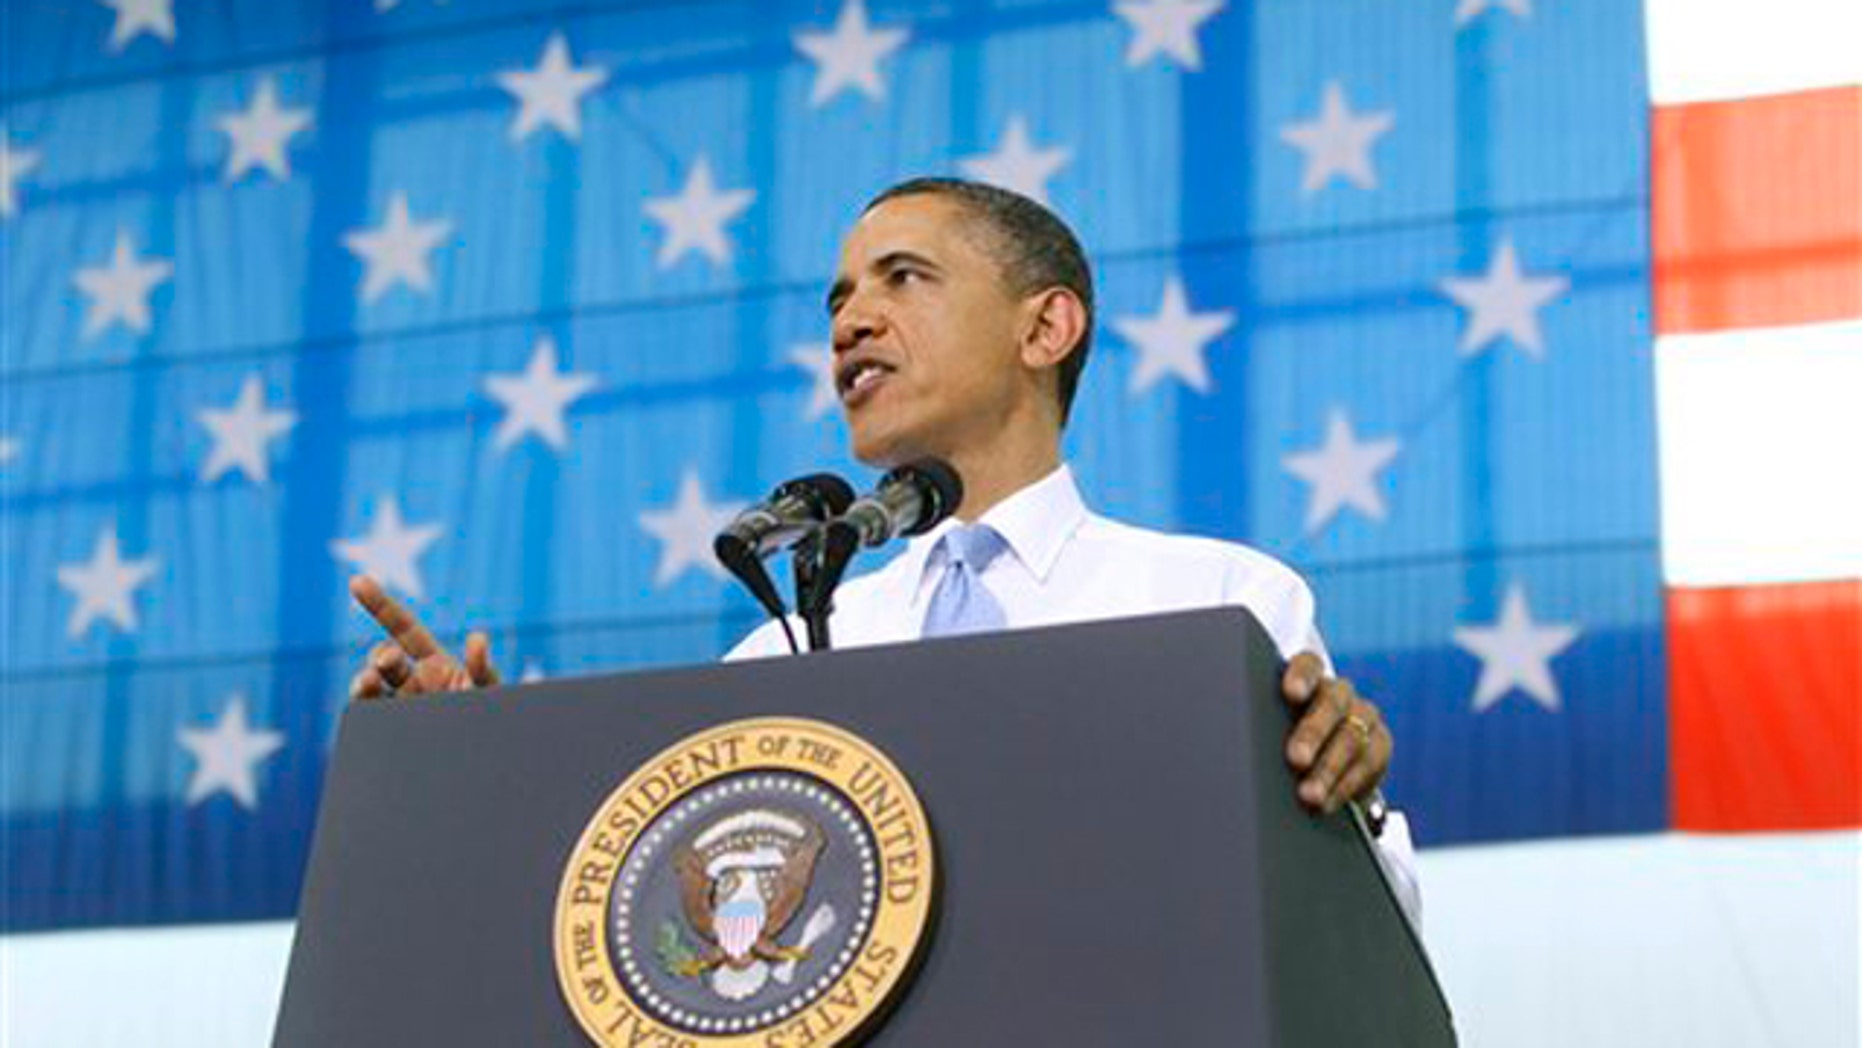 President Obama addresses military personnel who have recently returned from Afghanistan May 6 at Fort Campbell, Ky.